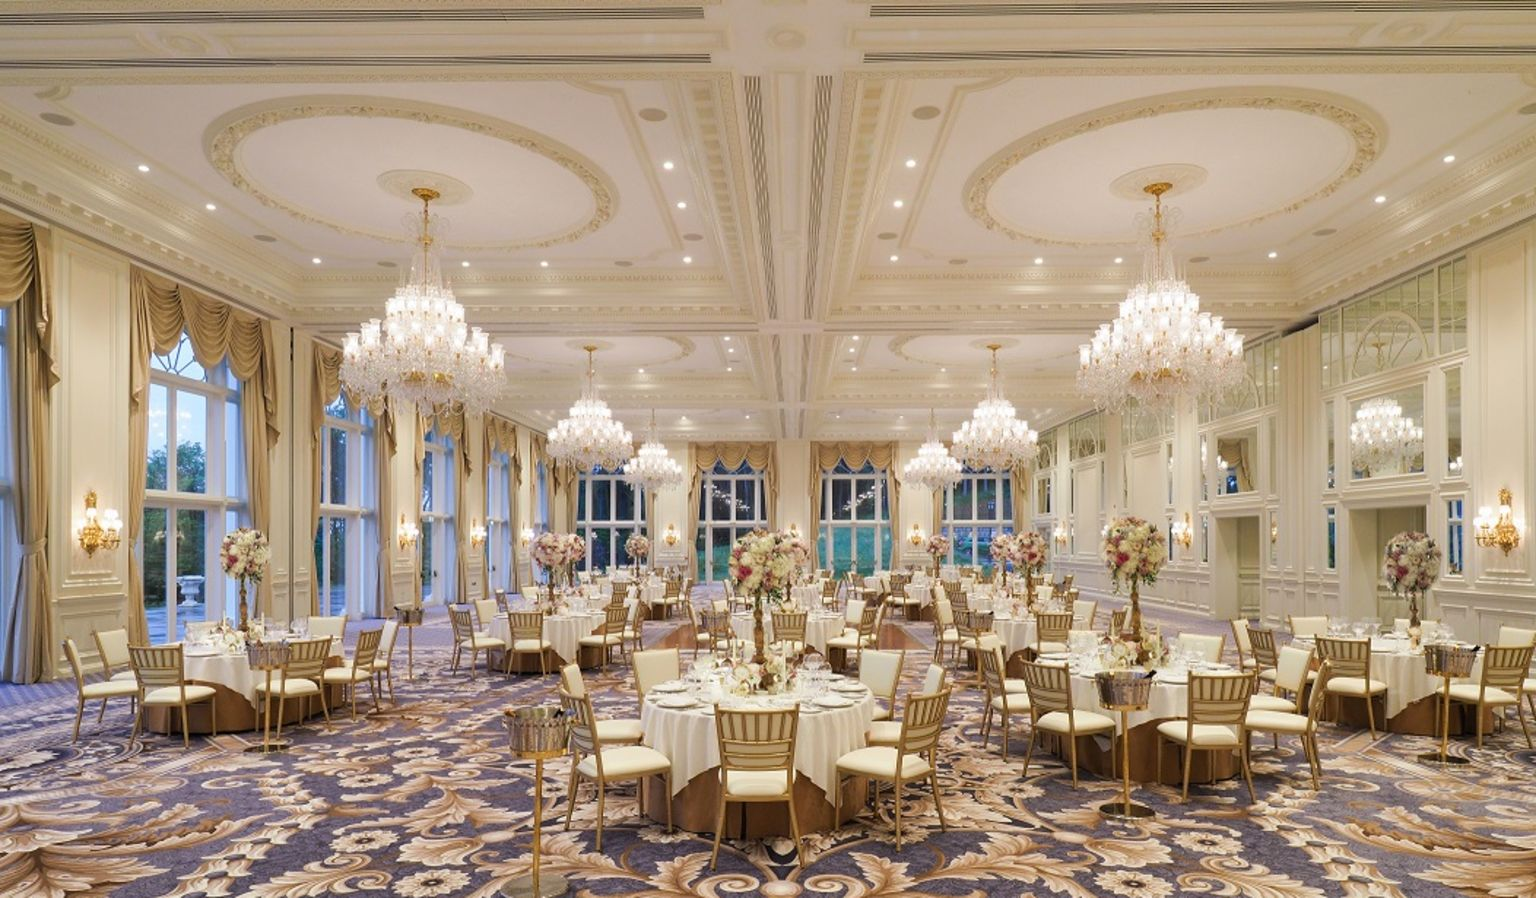 Ballroom with Tables, Chairs and Chandeliers